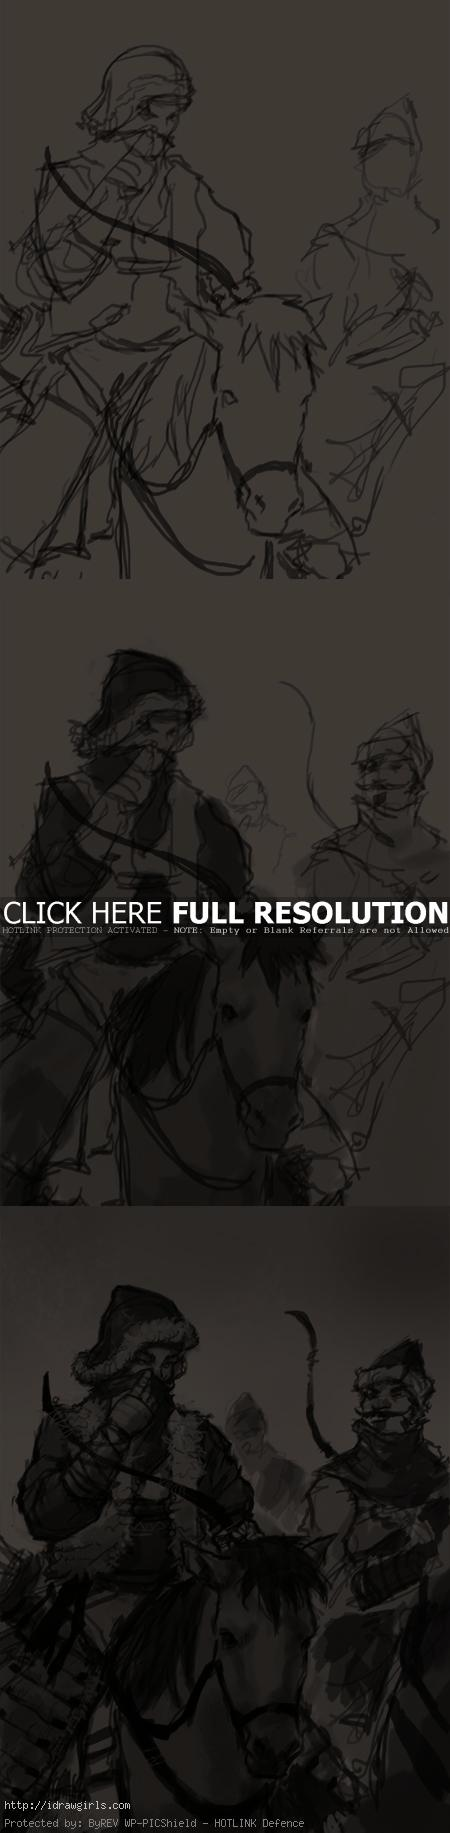 draw people on horseback